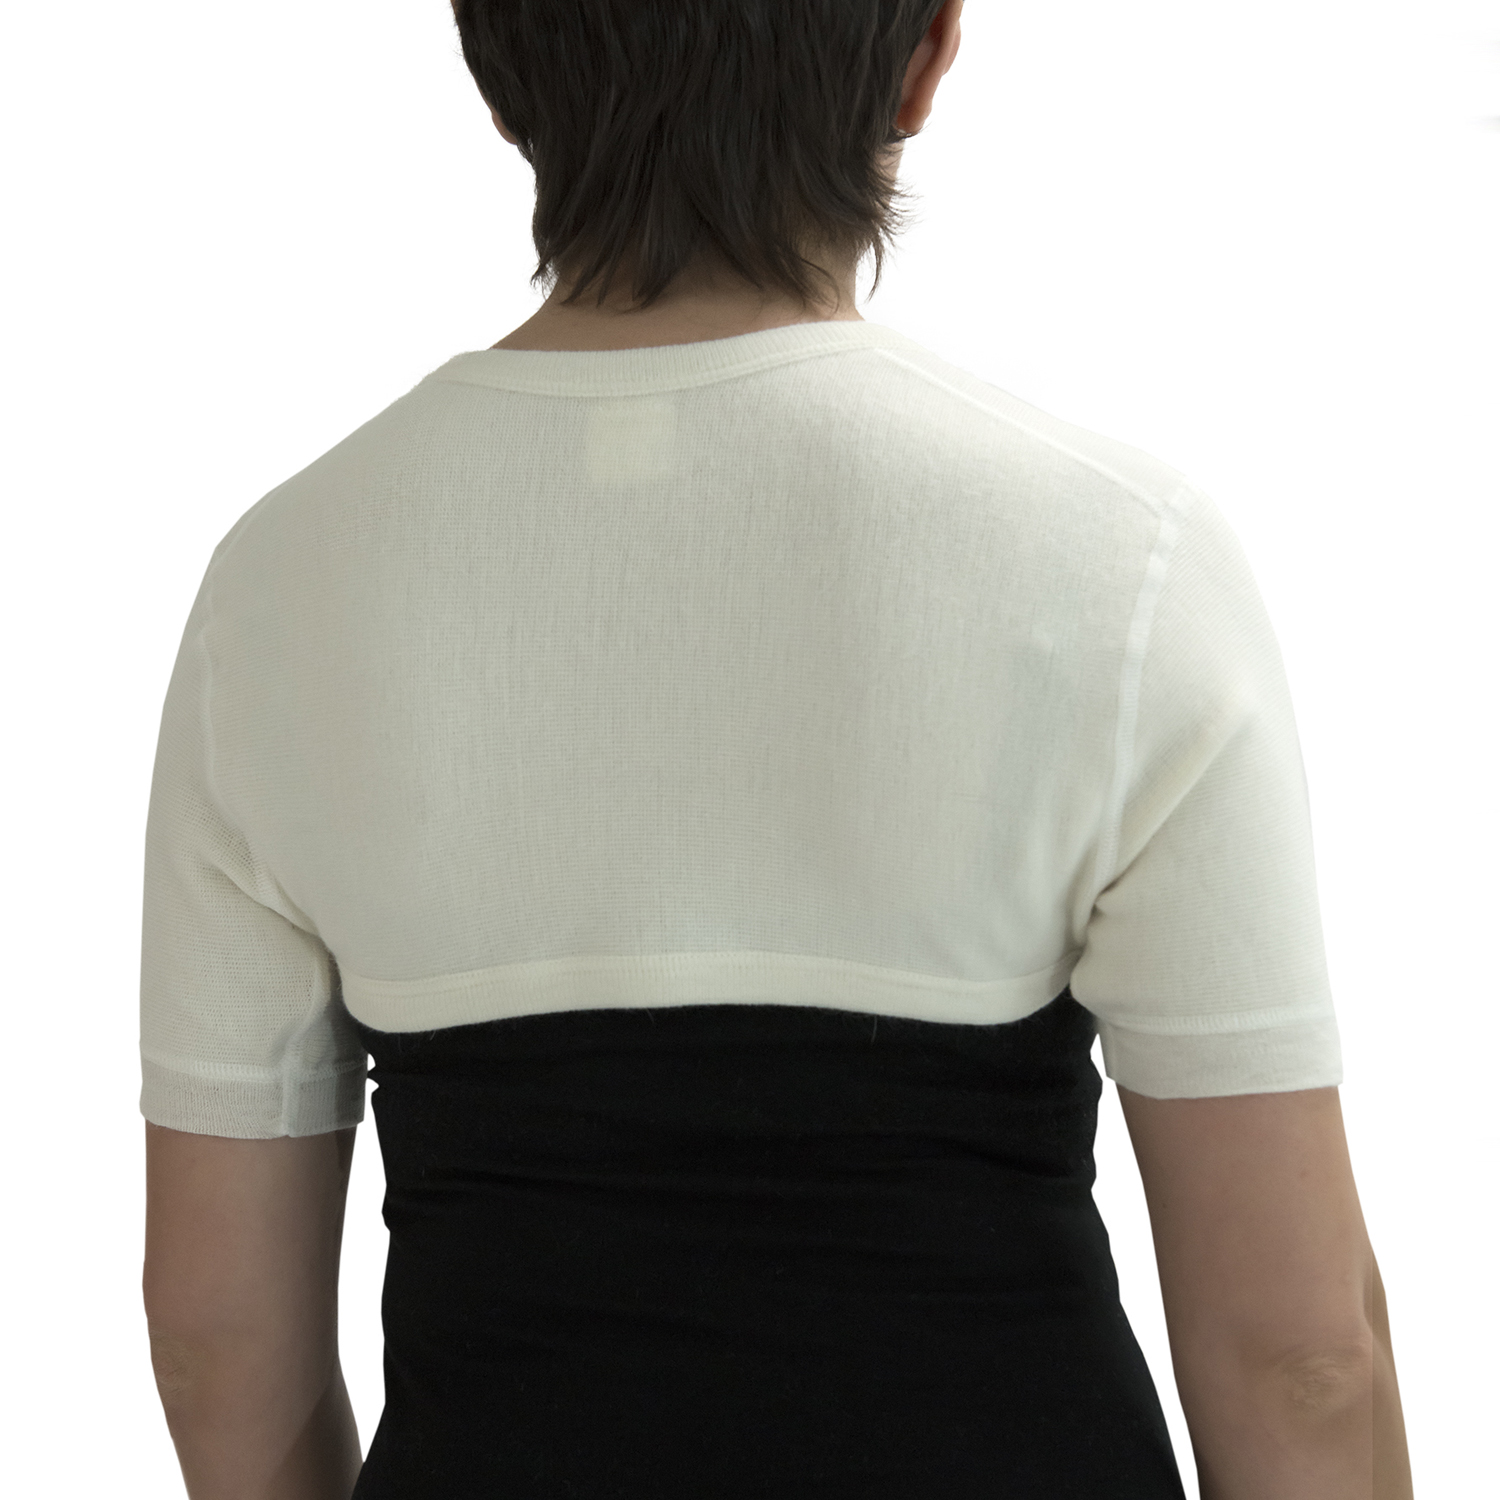 MAXAR Style ASS-503 Upper Back and Shoulder Warming Support (30% Angora)